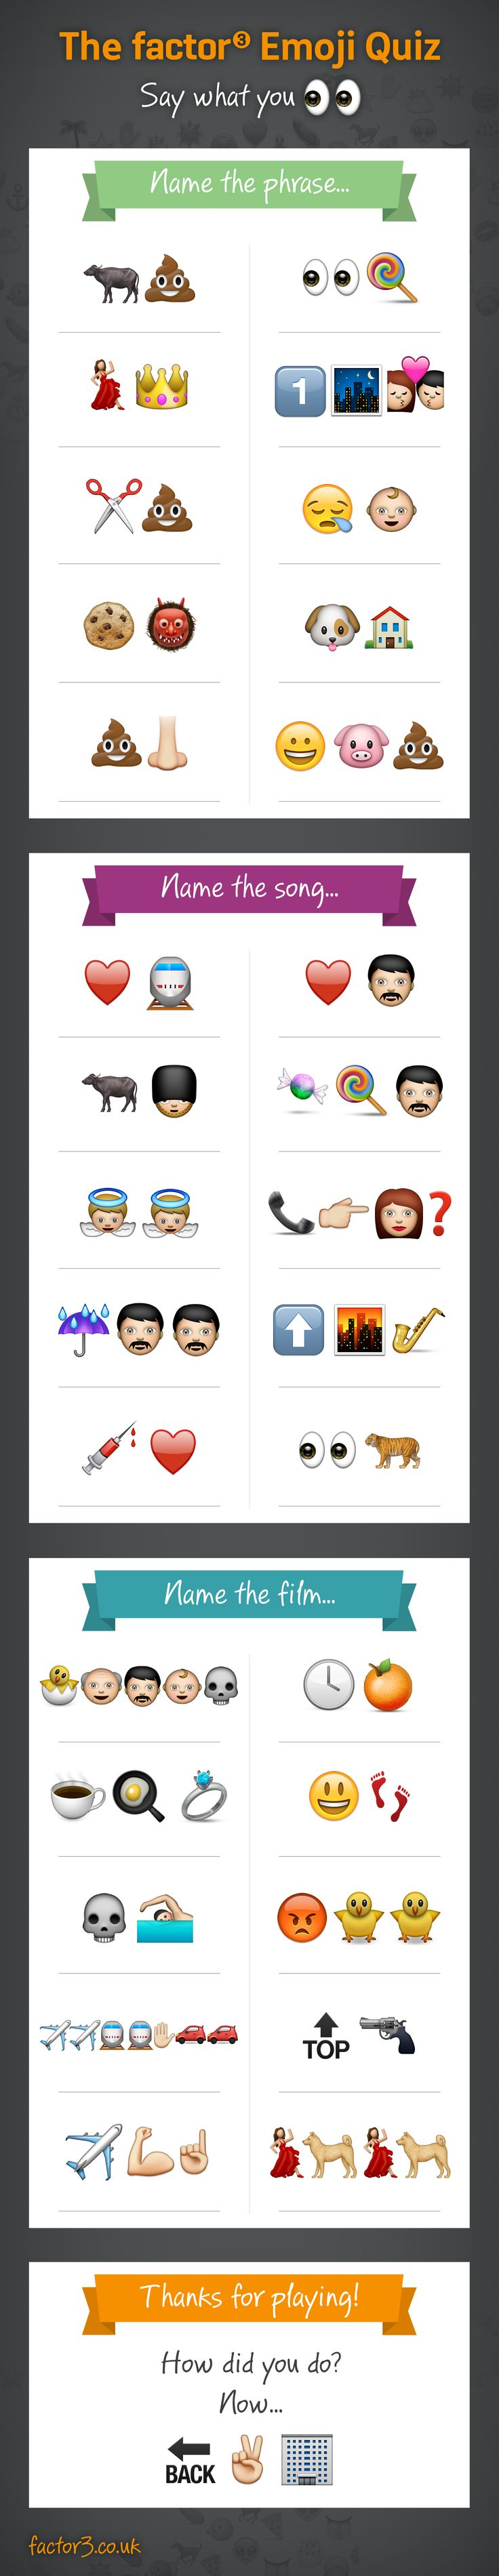 An emoji combinations quiz from Factor 3. Download the answers here: http://www.factor3.co.uk/blog/the-factor-3-emoji-combinations-quiz/